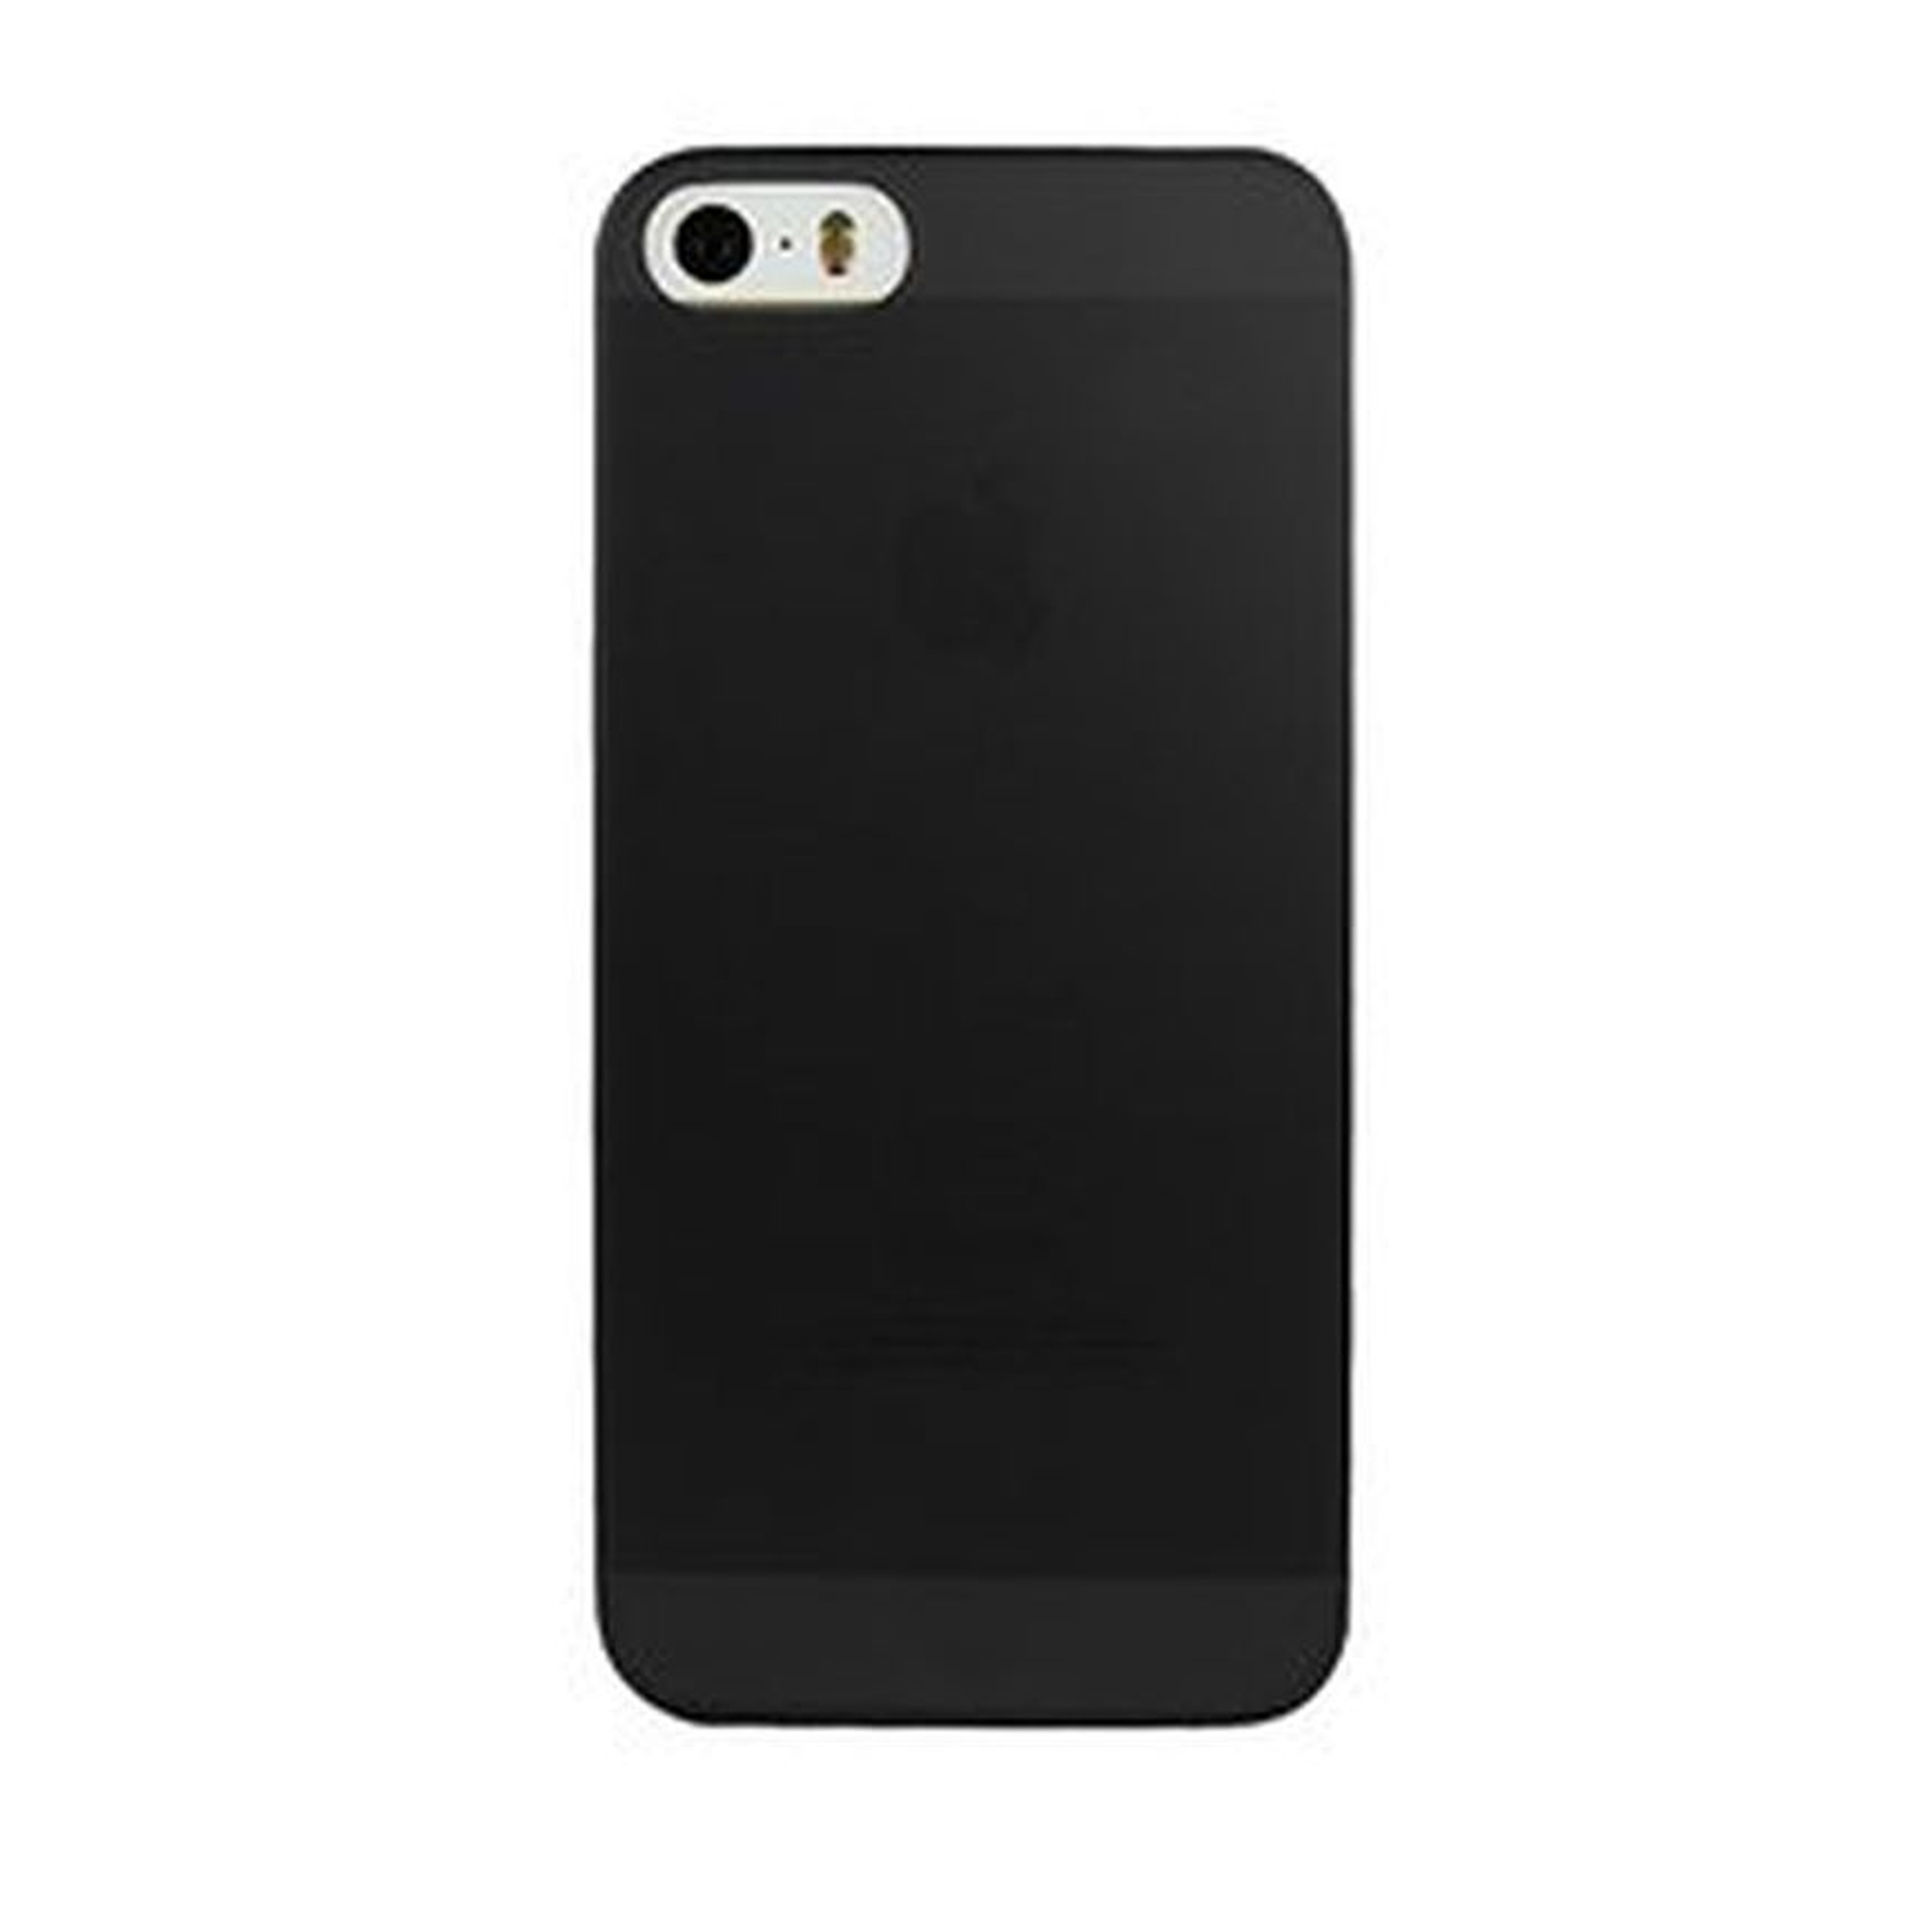 Optima Slim Cover Jelly Beans für Apple iPhone 5 / 5S schwarz